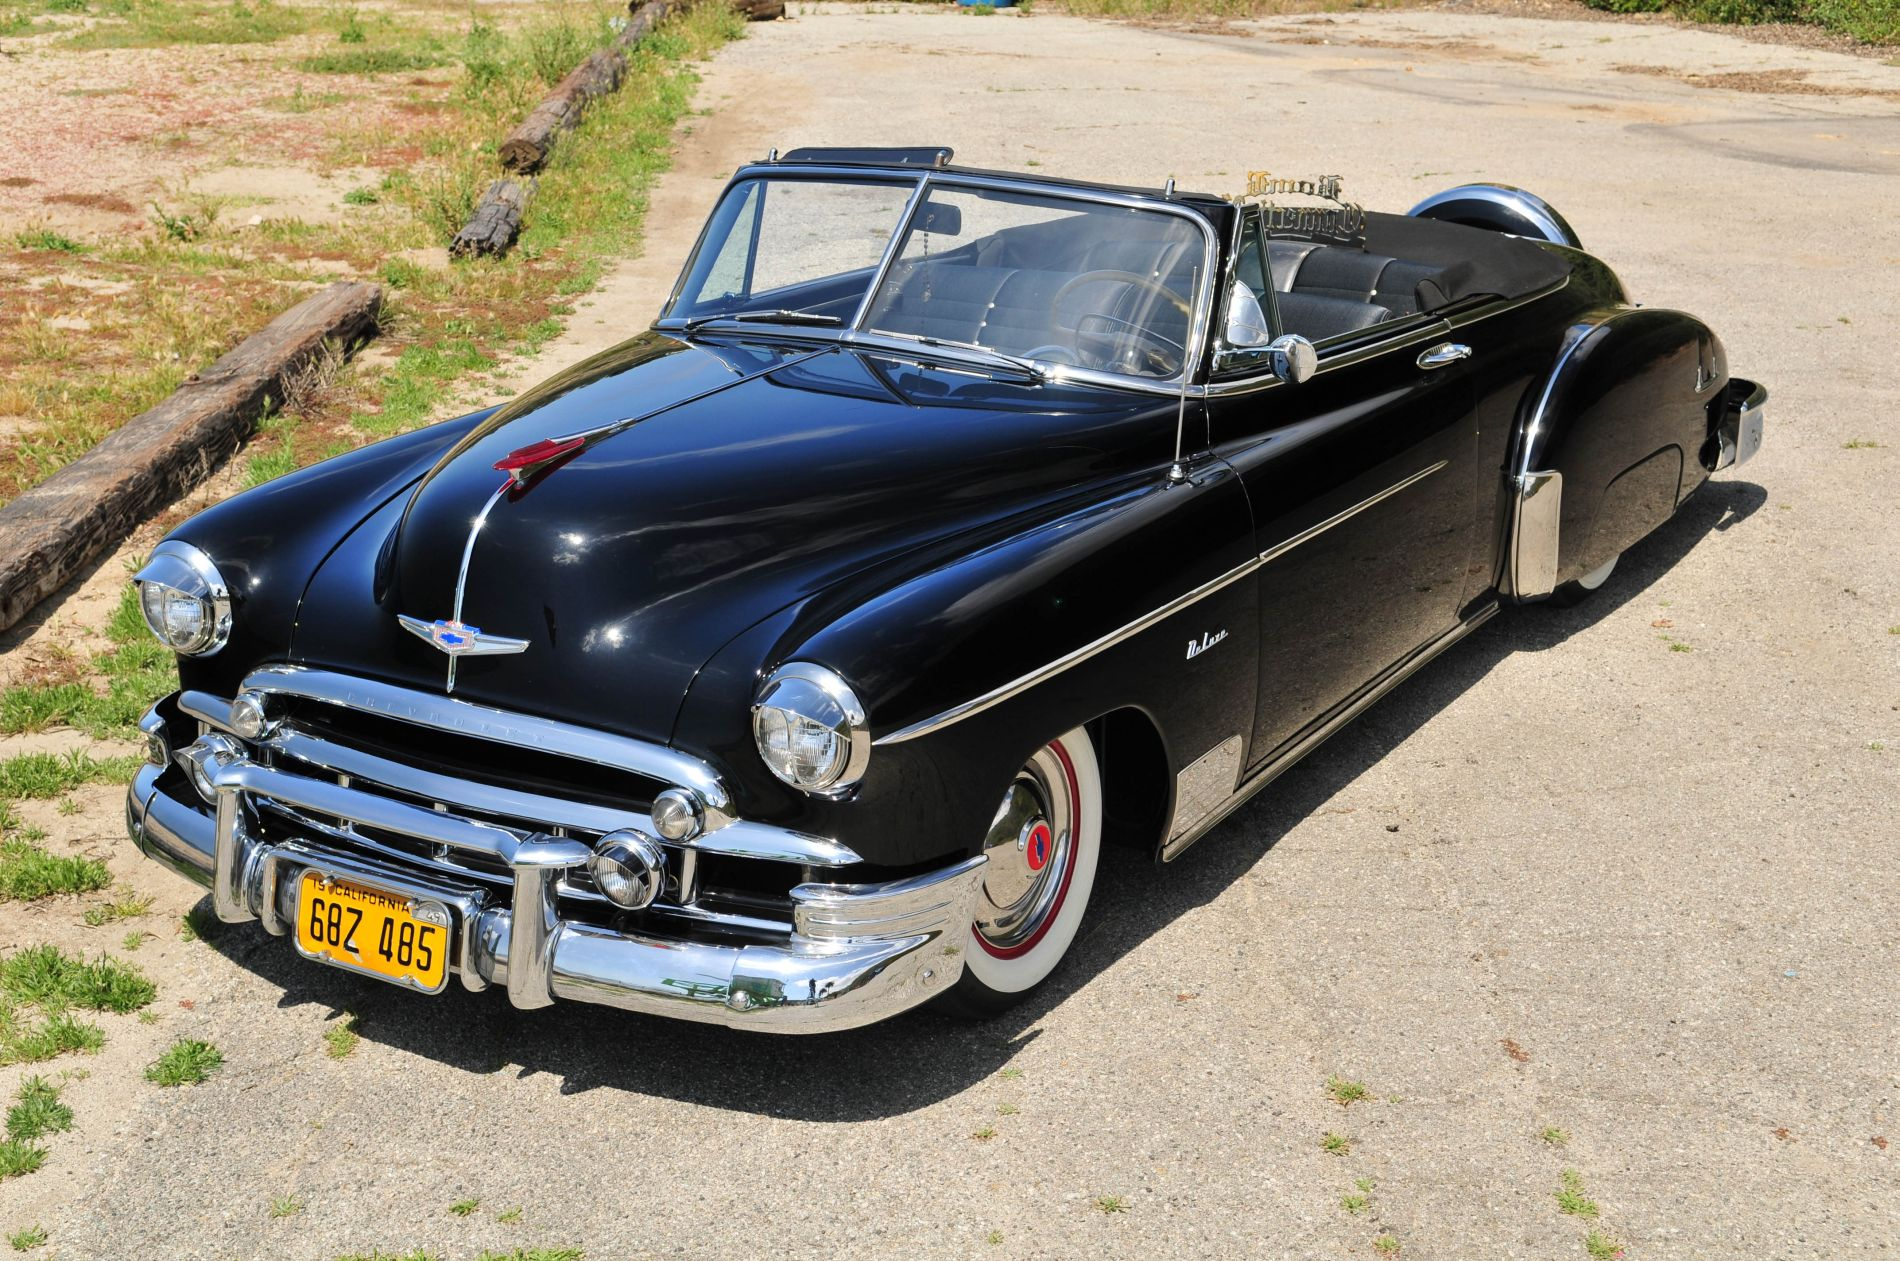 Used Chevy Trucks For Sale >> 1949 Chevrolet Convertible - Lowrider Magazine